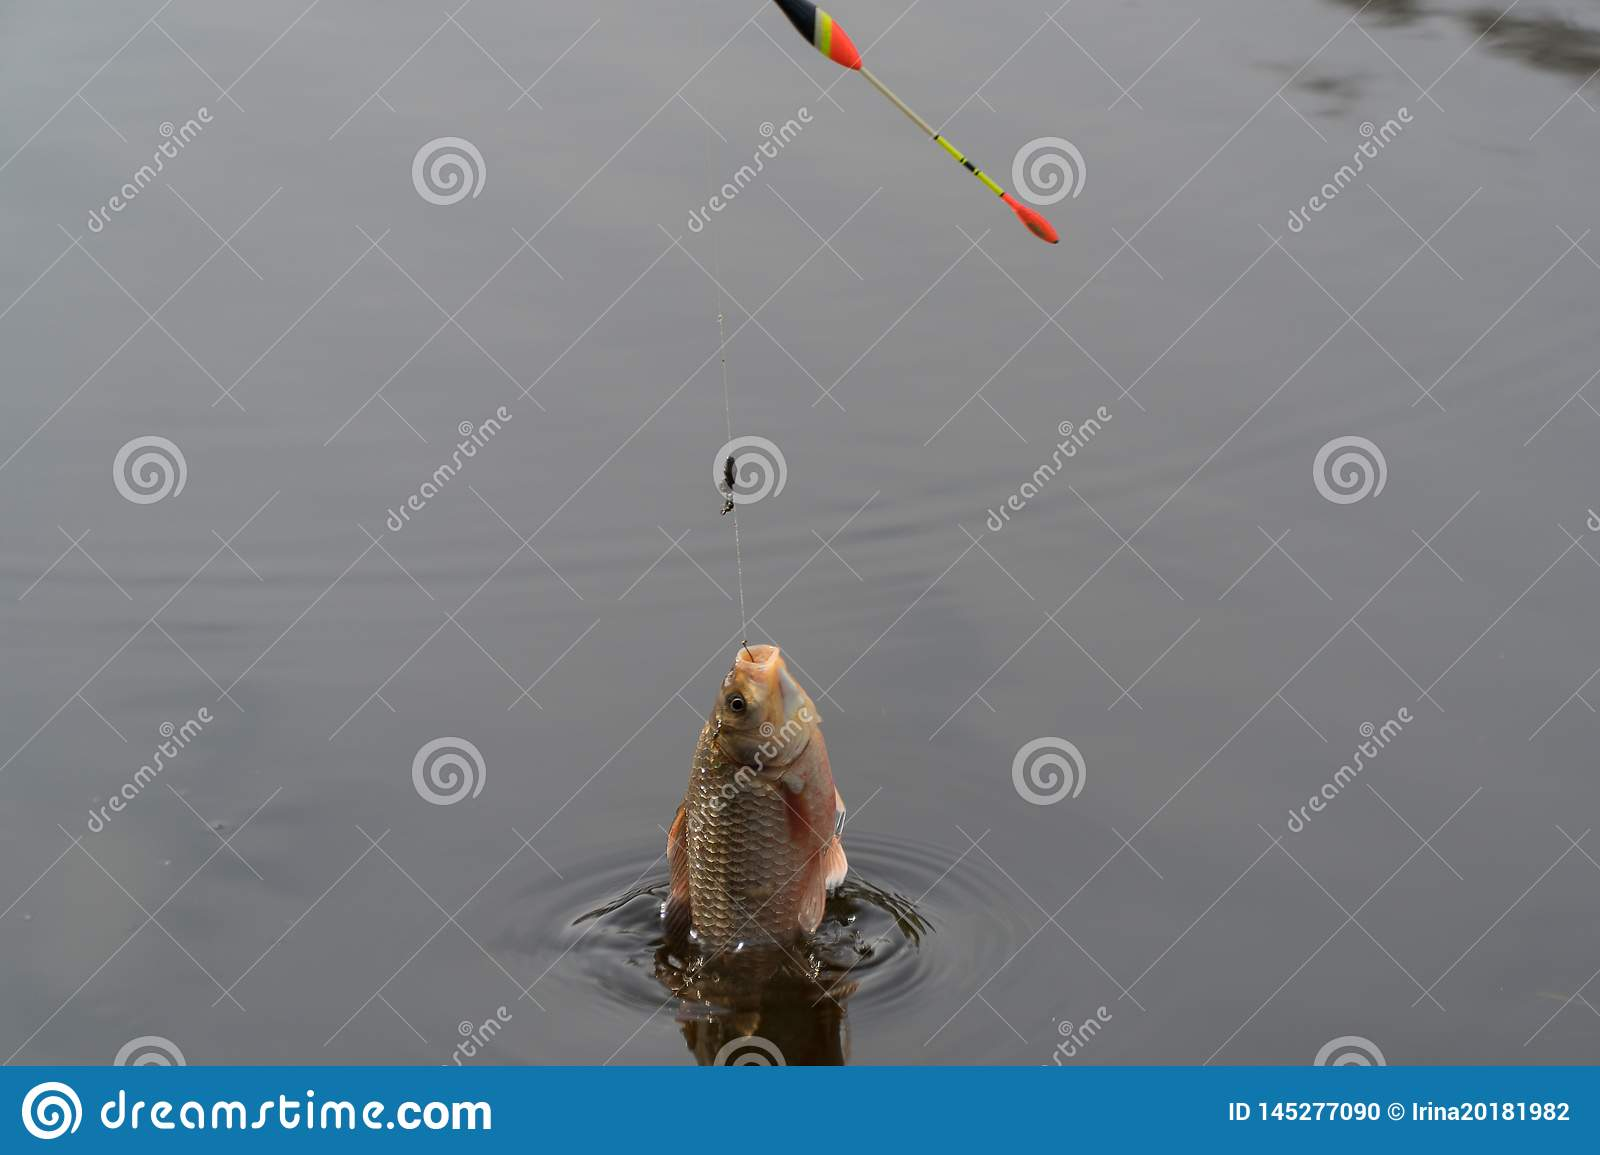 Flying fish over the river